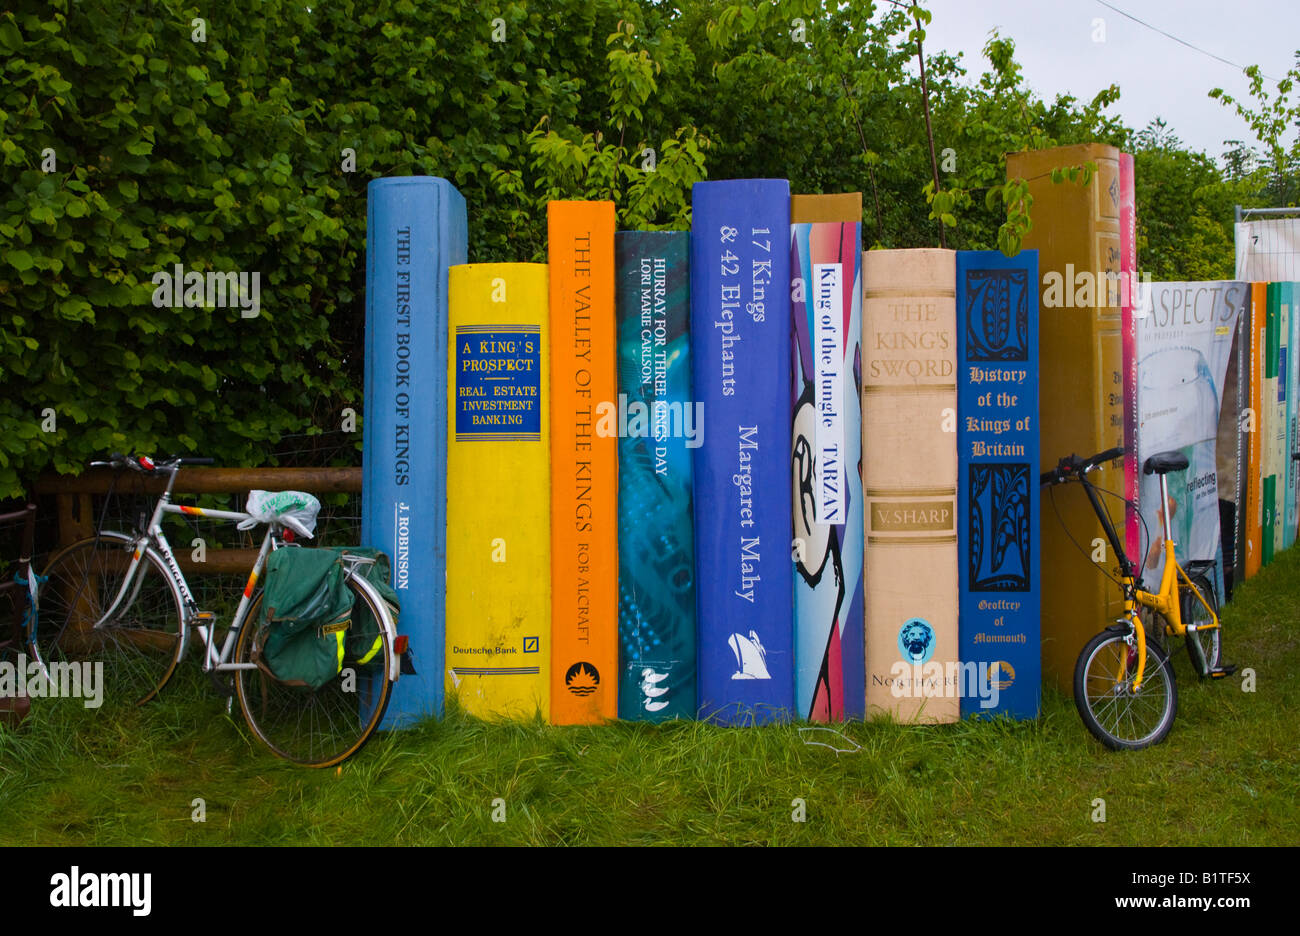 Large book display at entrance to The Guardian Hay Festival 2008 Hay on Wye Powys Wales UK EU with bikes resting - Stock Image